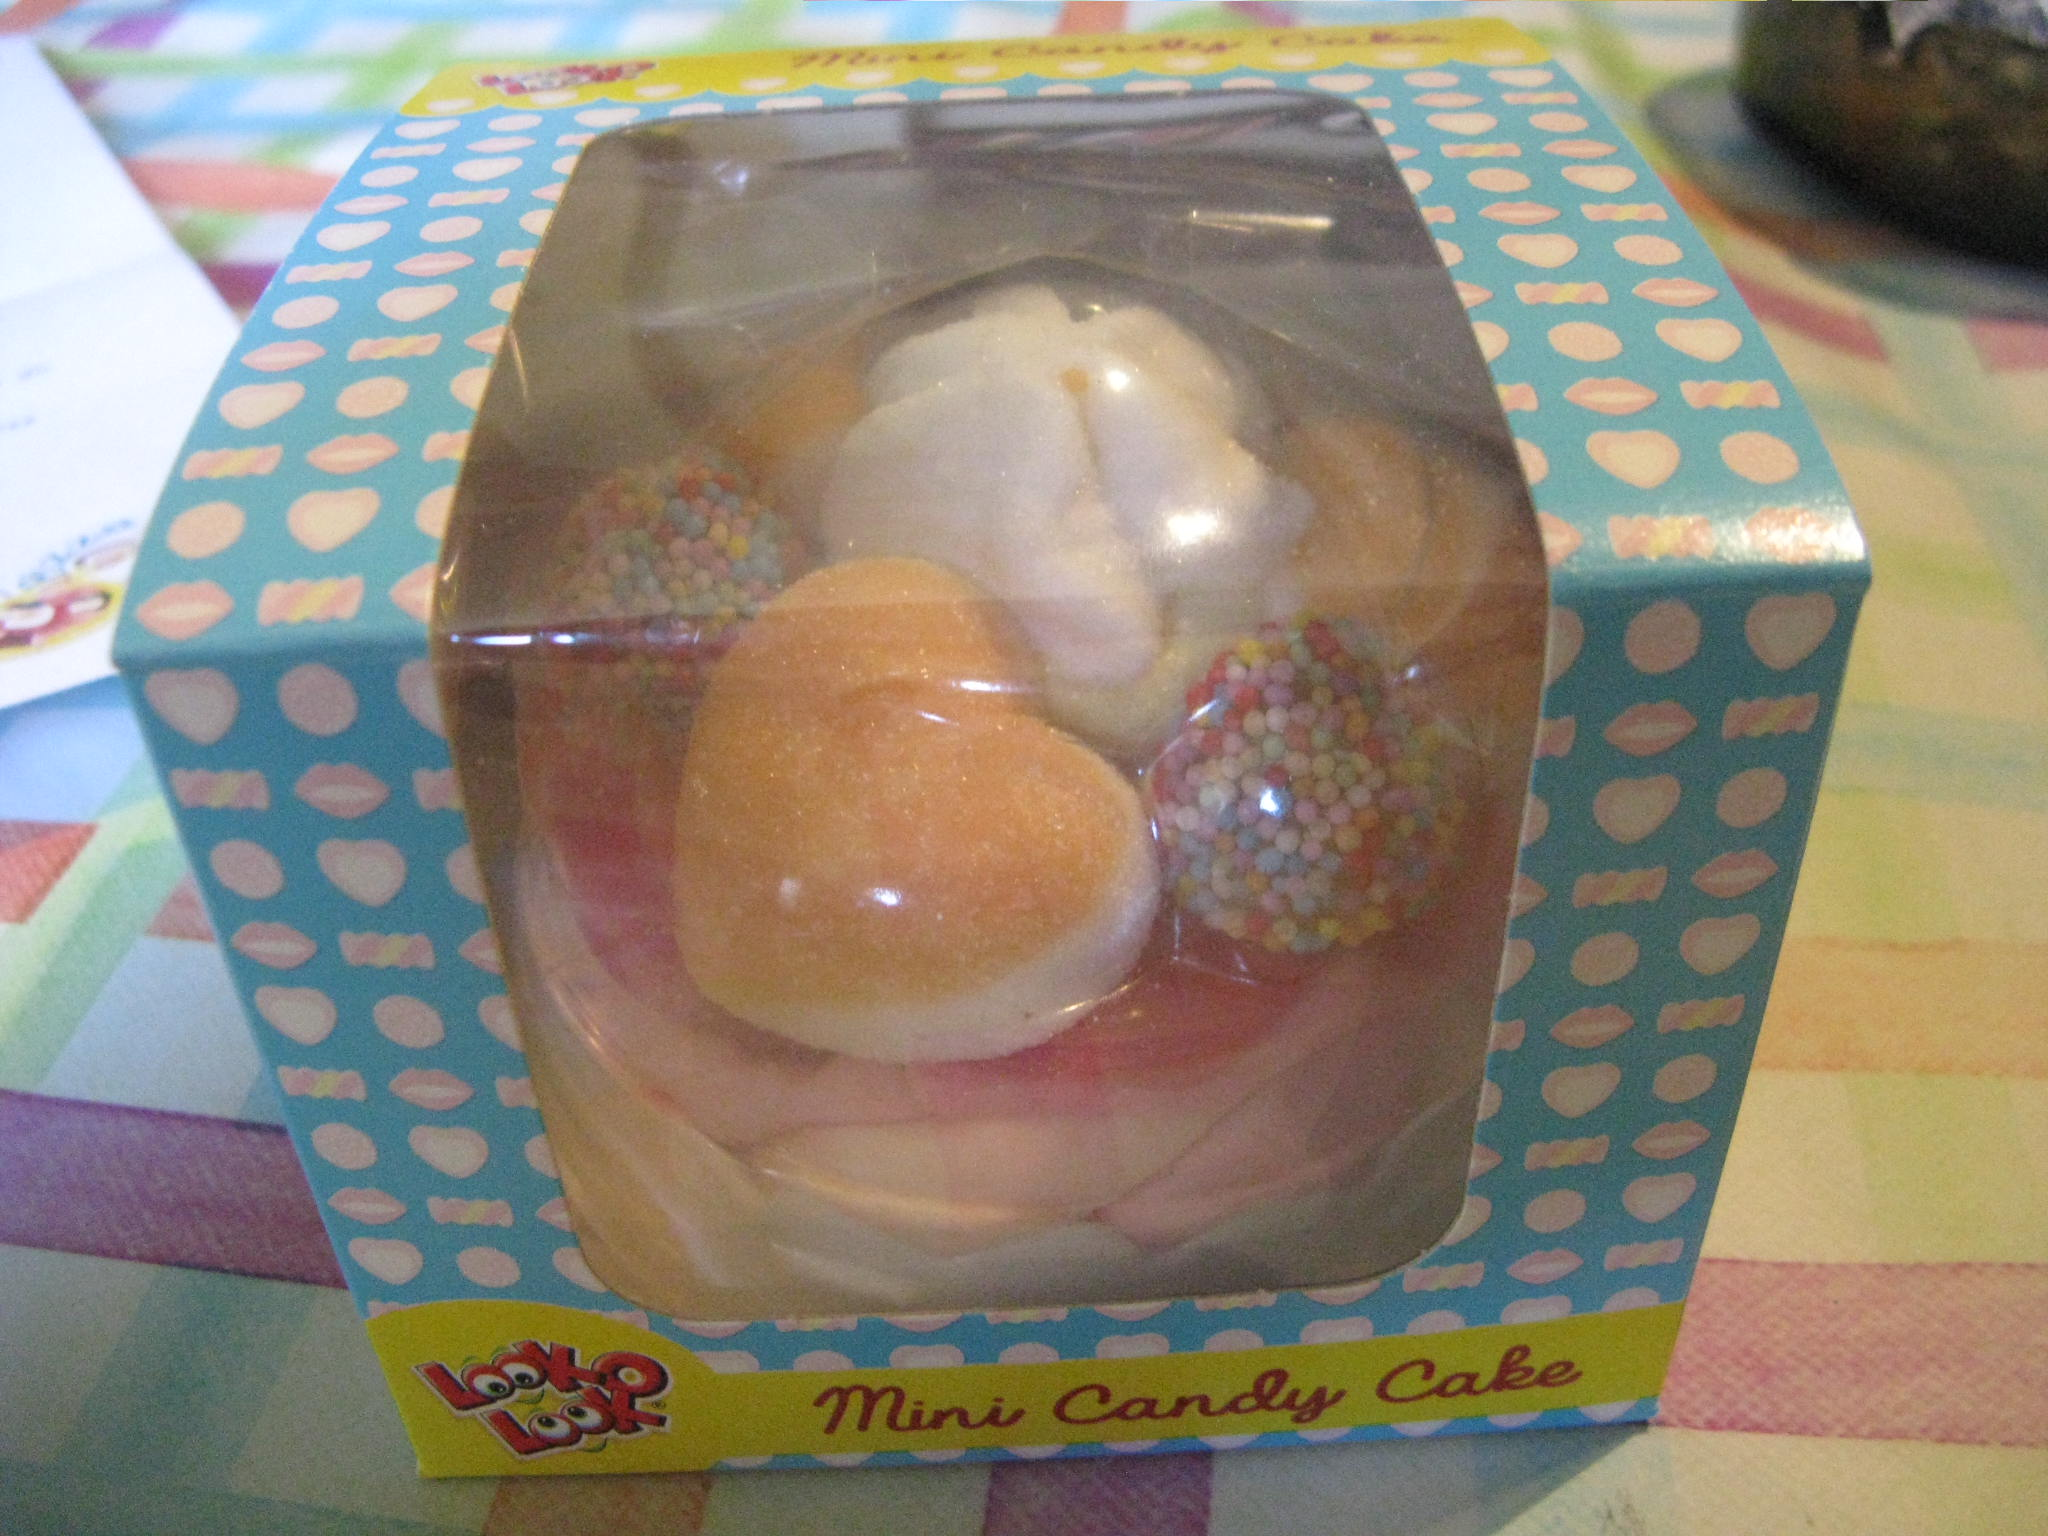 Mini Candy Cake von Look-O-Look